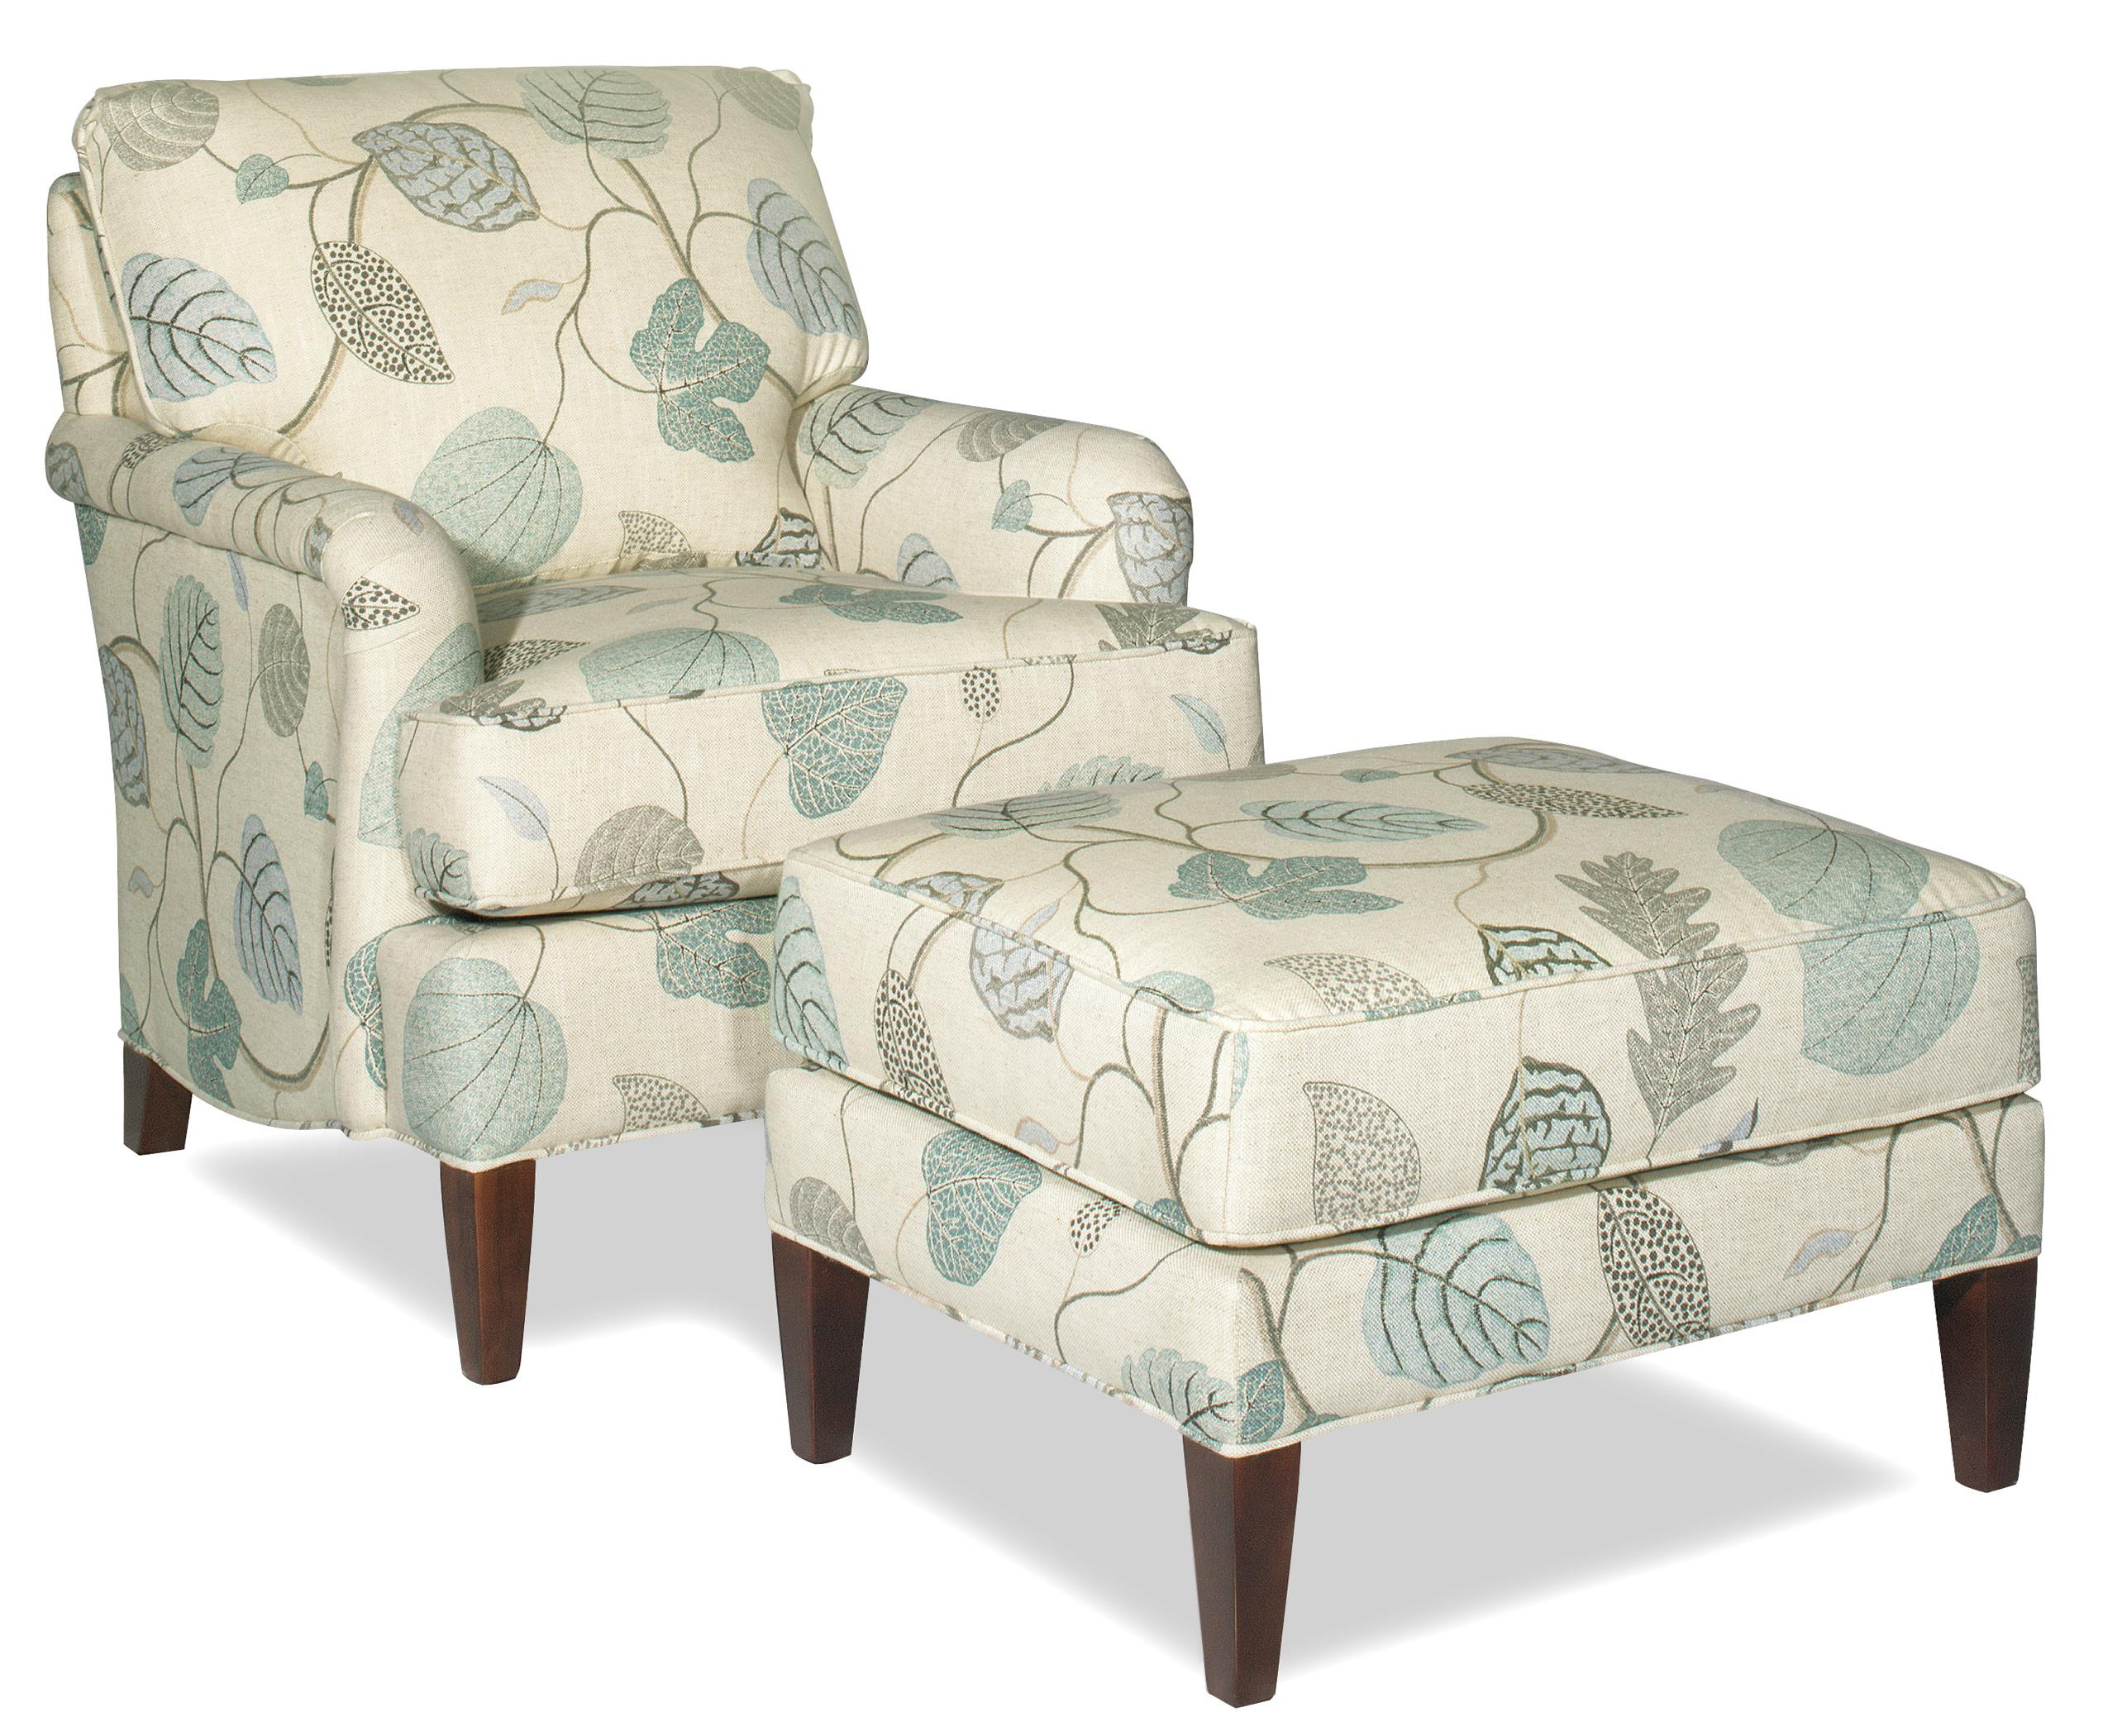 accent chairs on clearance revolving chair meaning in urdu craftmaster transitional and ottoman